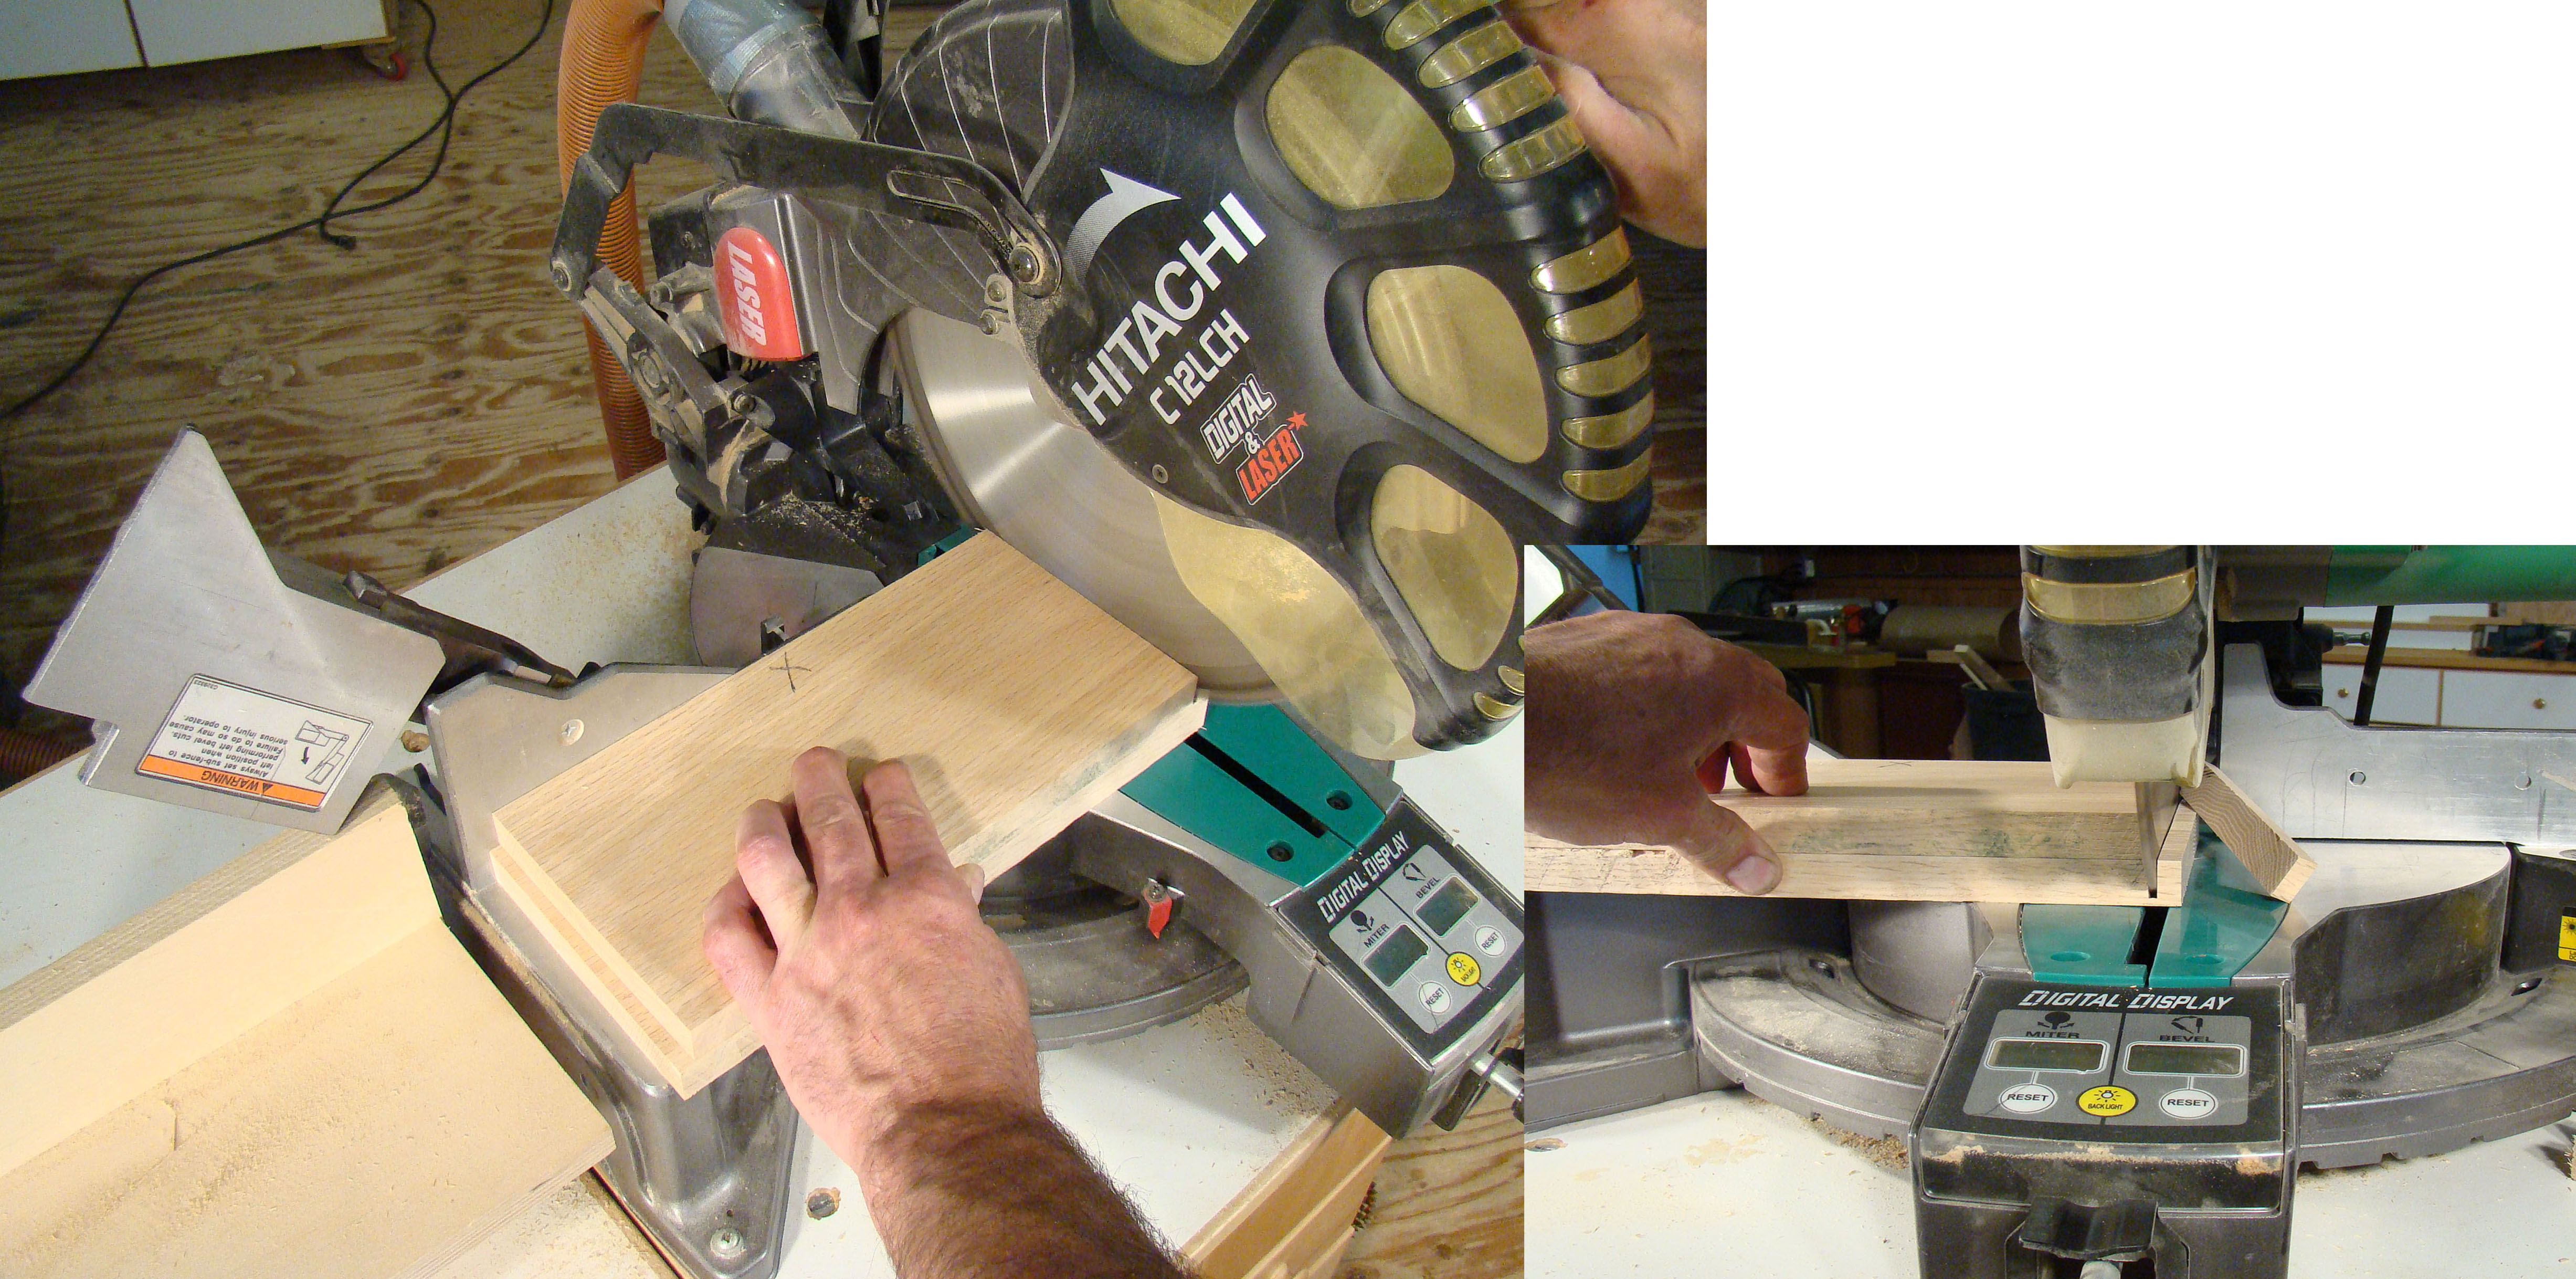 Setting up a miter saw